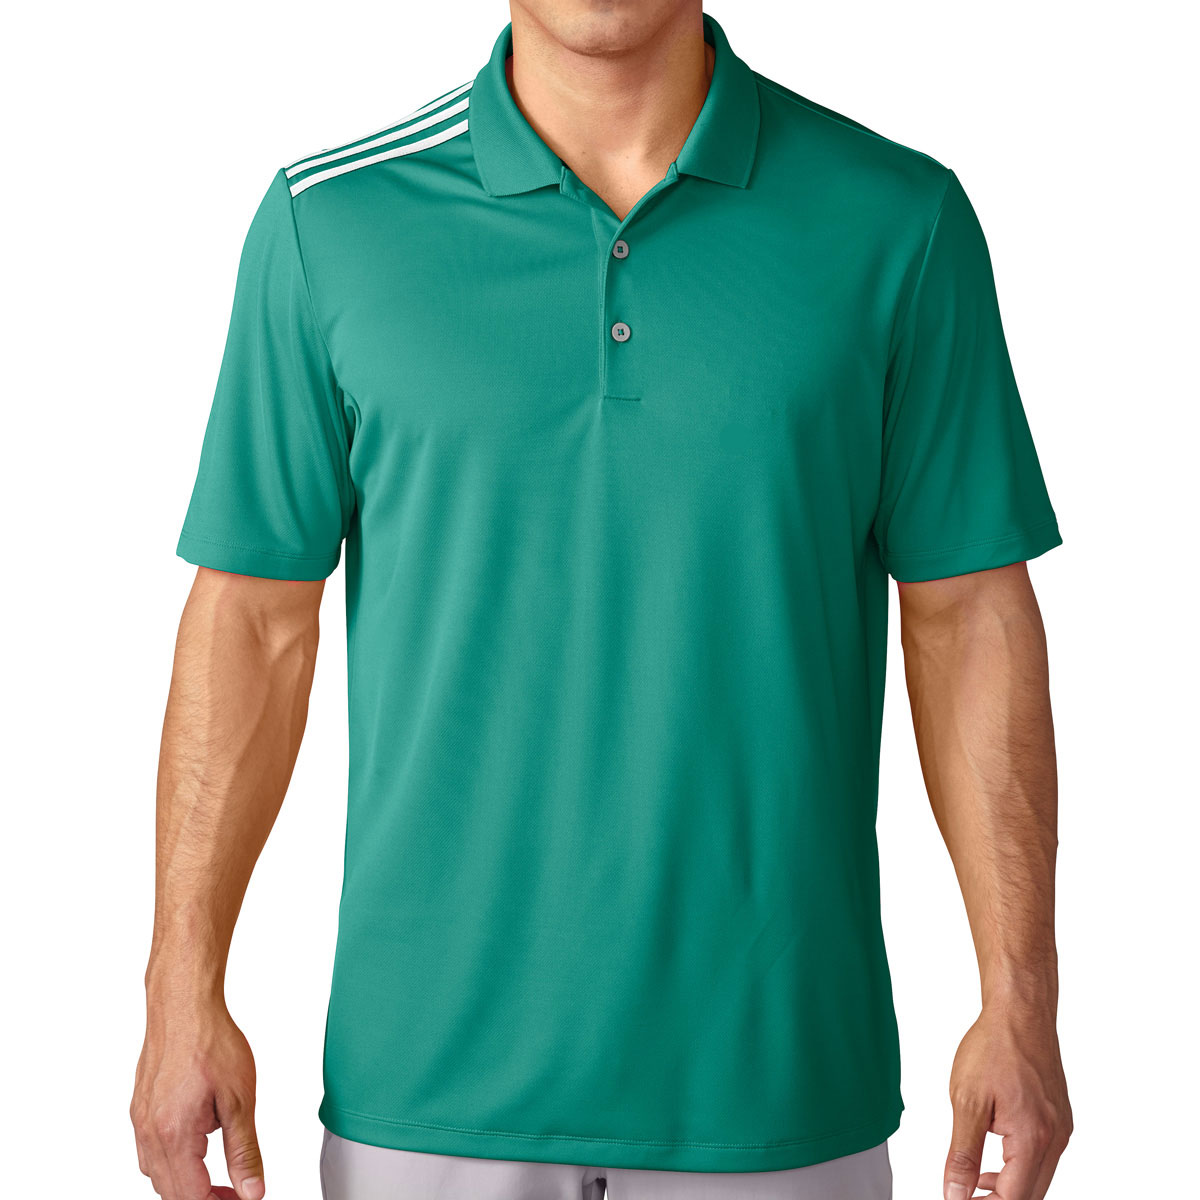 Adidas golf 2016 mens climacool 3 stripes performance polo for Mens golf polo shirts